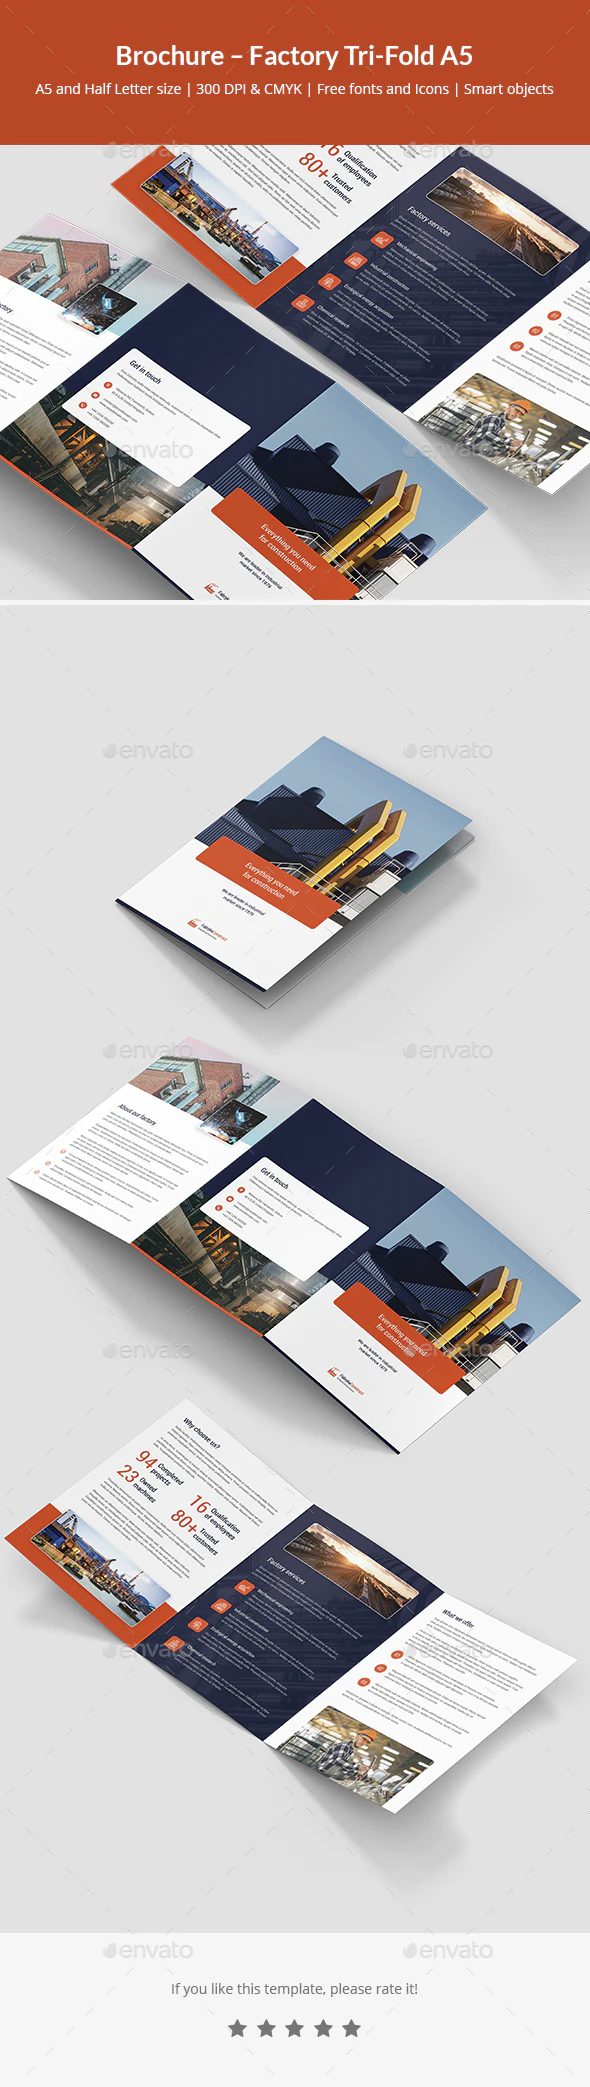 Brochure Factory Tri Fold A5 By Artbart Graphicriver Brochure Travel Brochure Template Color Photoshop